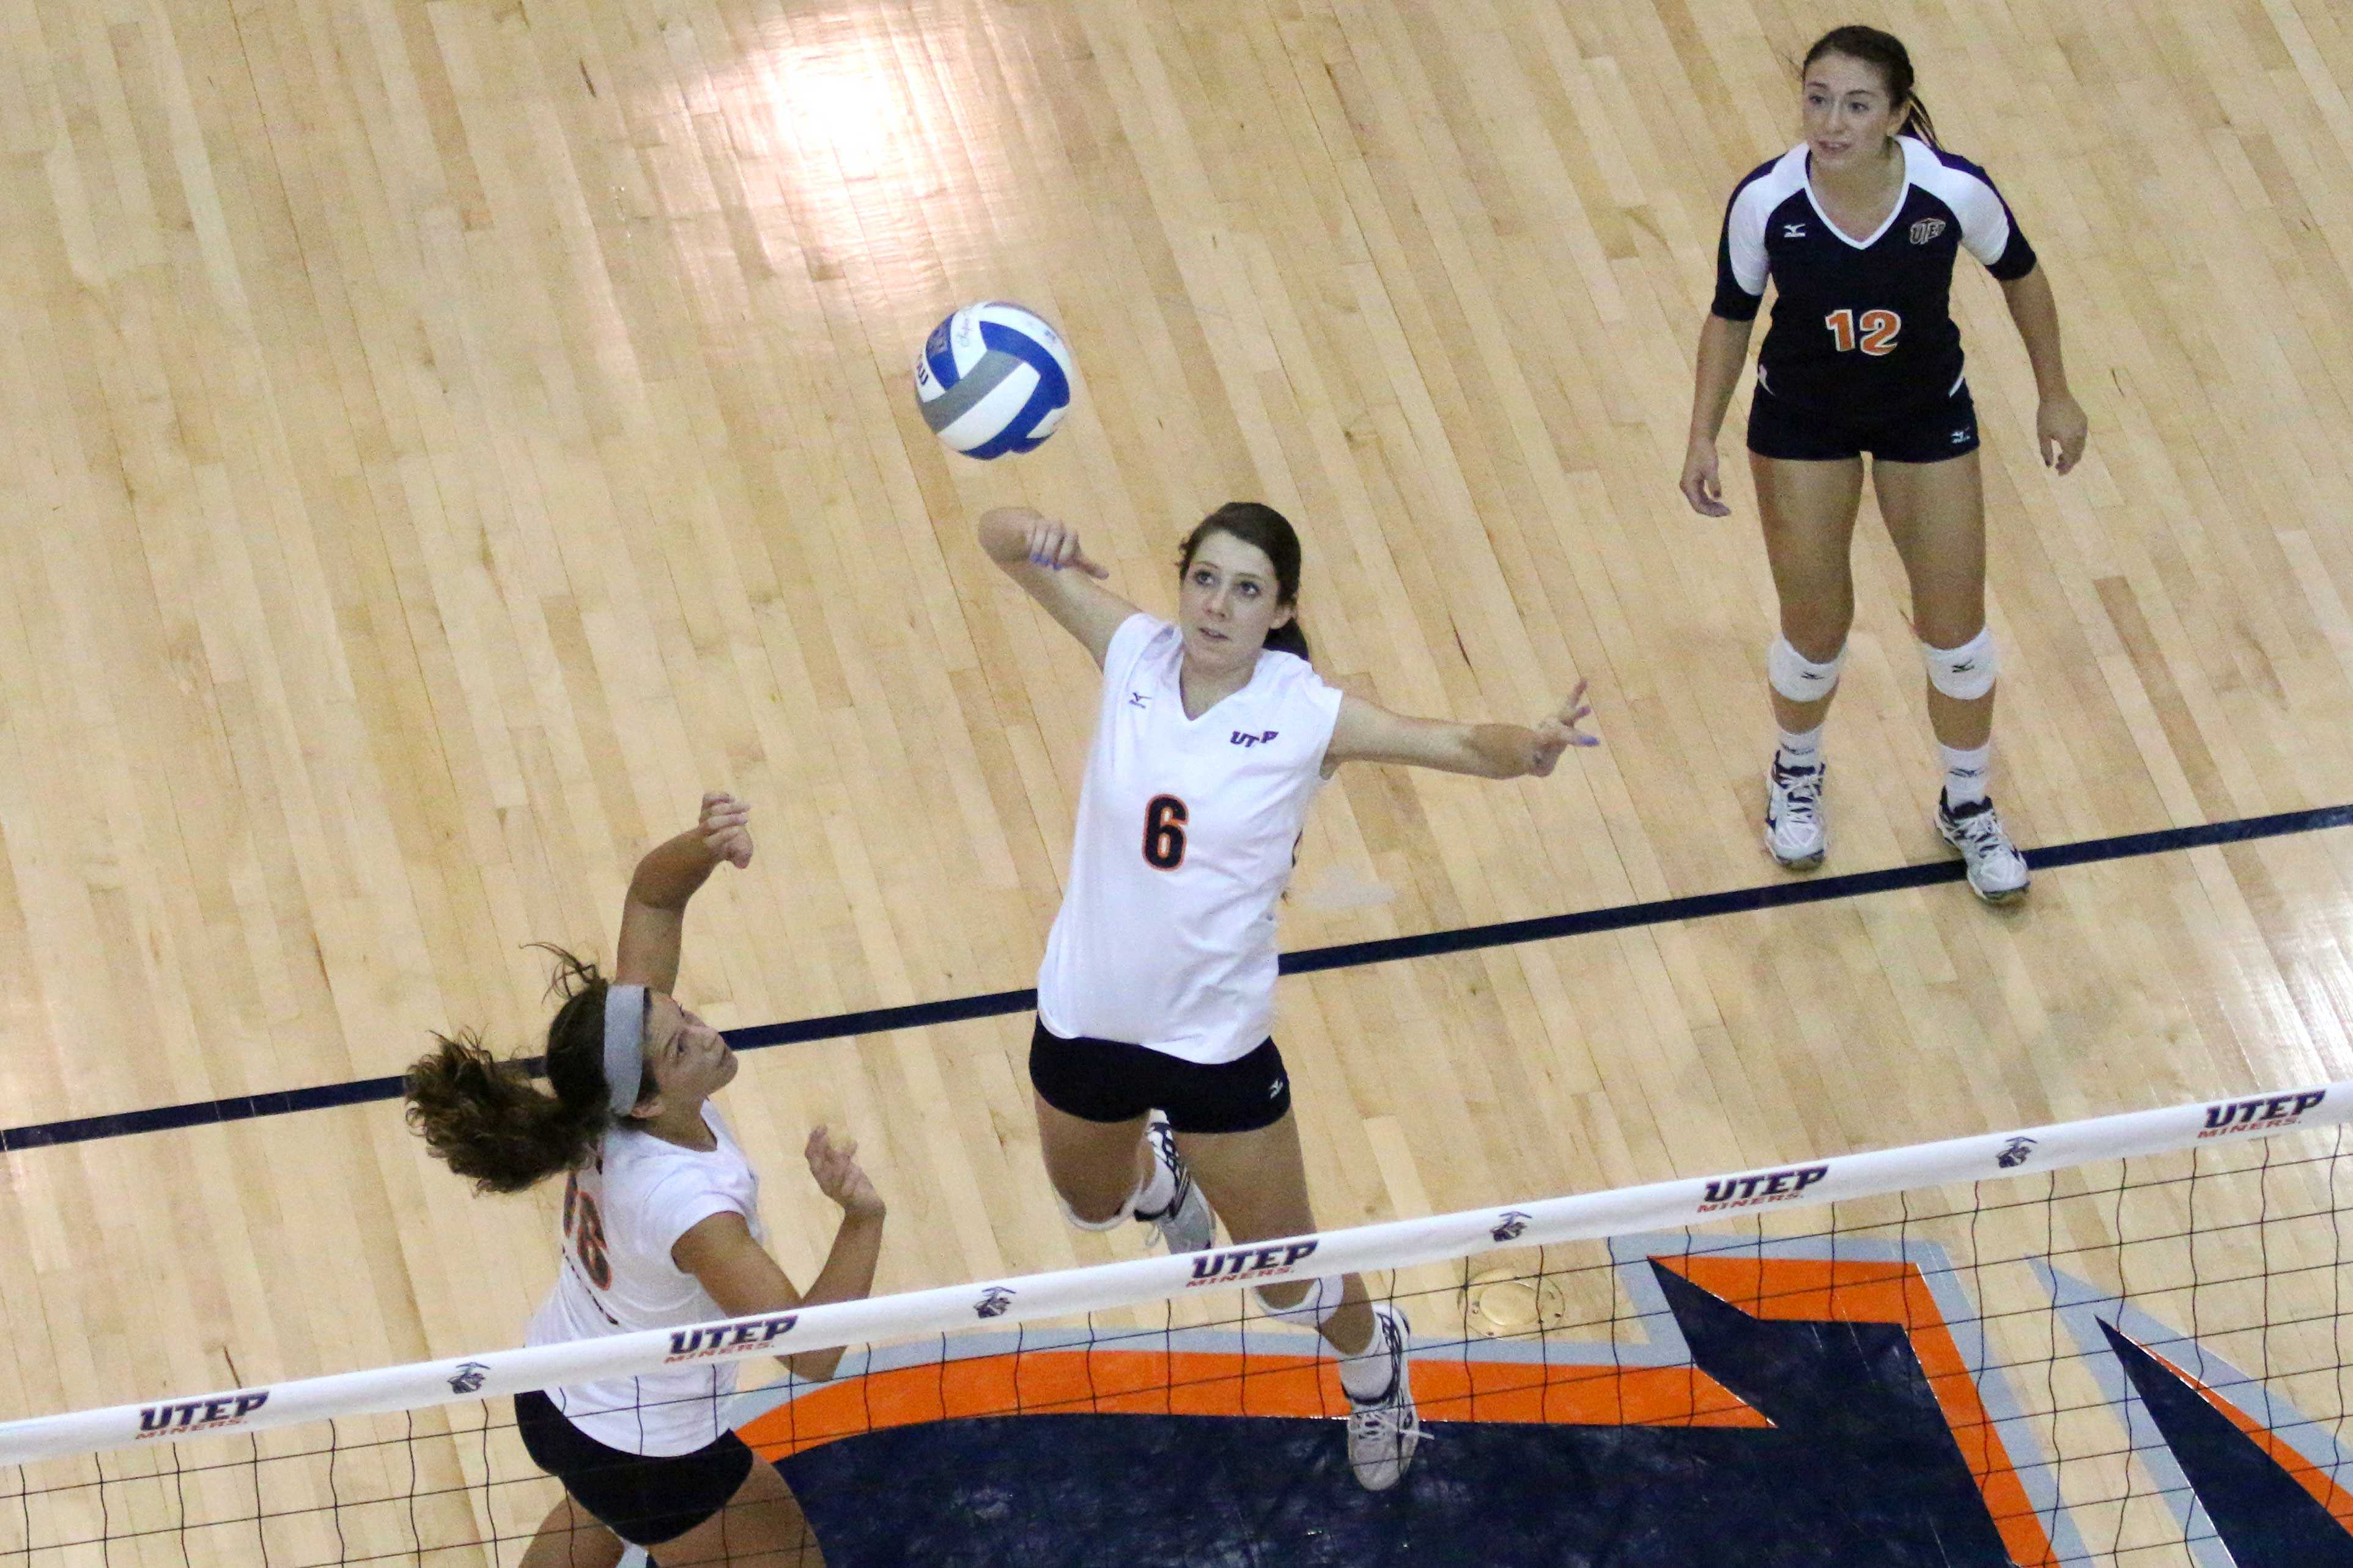 The UTEP women's Volleyball team has already surpassed their win total from last year with their seventh win against Middle Tennessee this past Sunday.